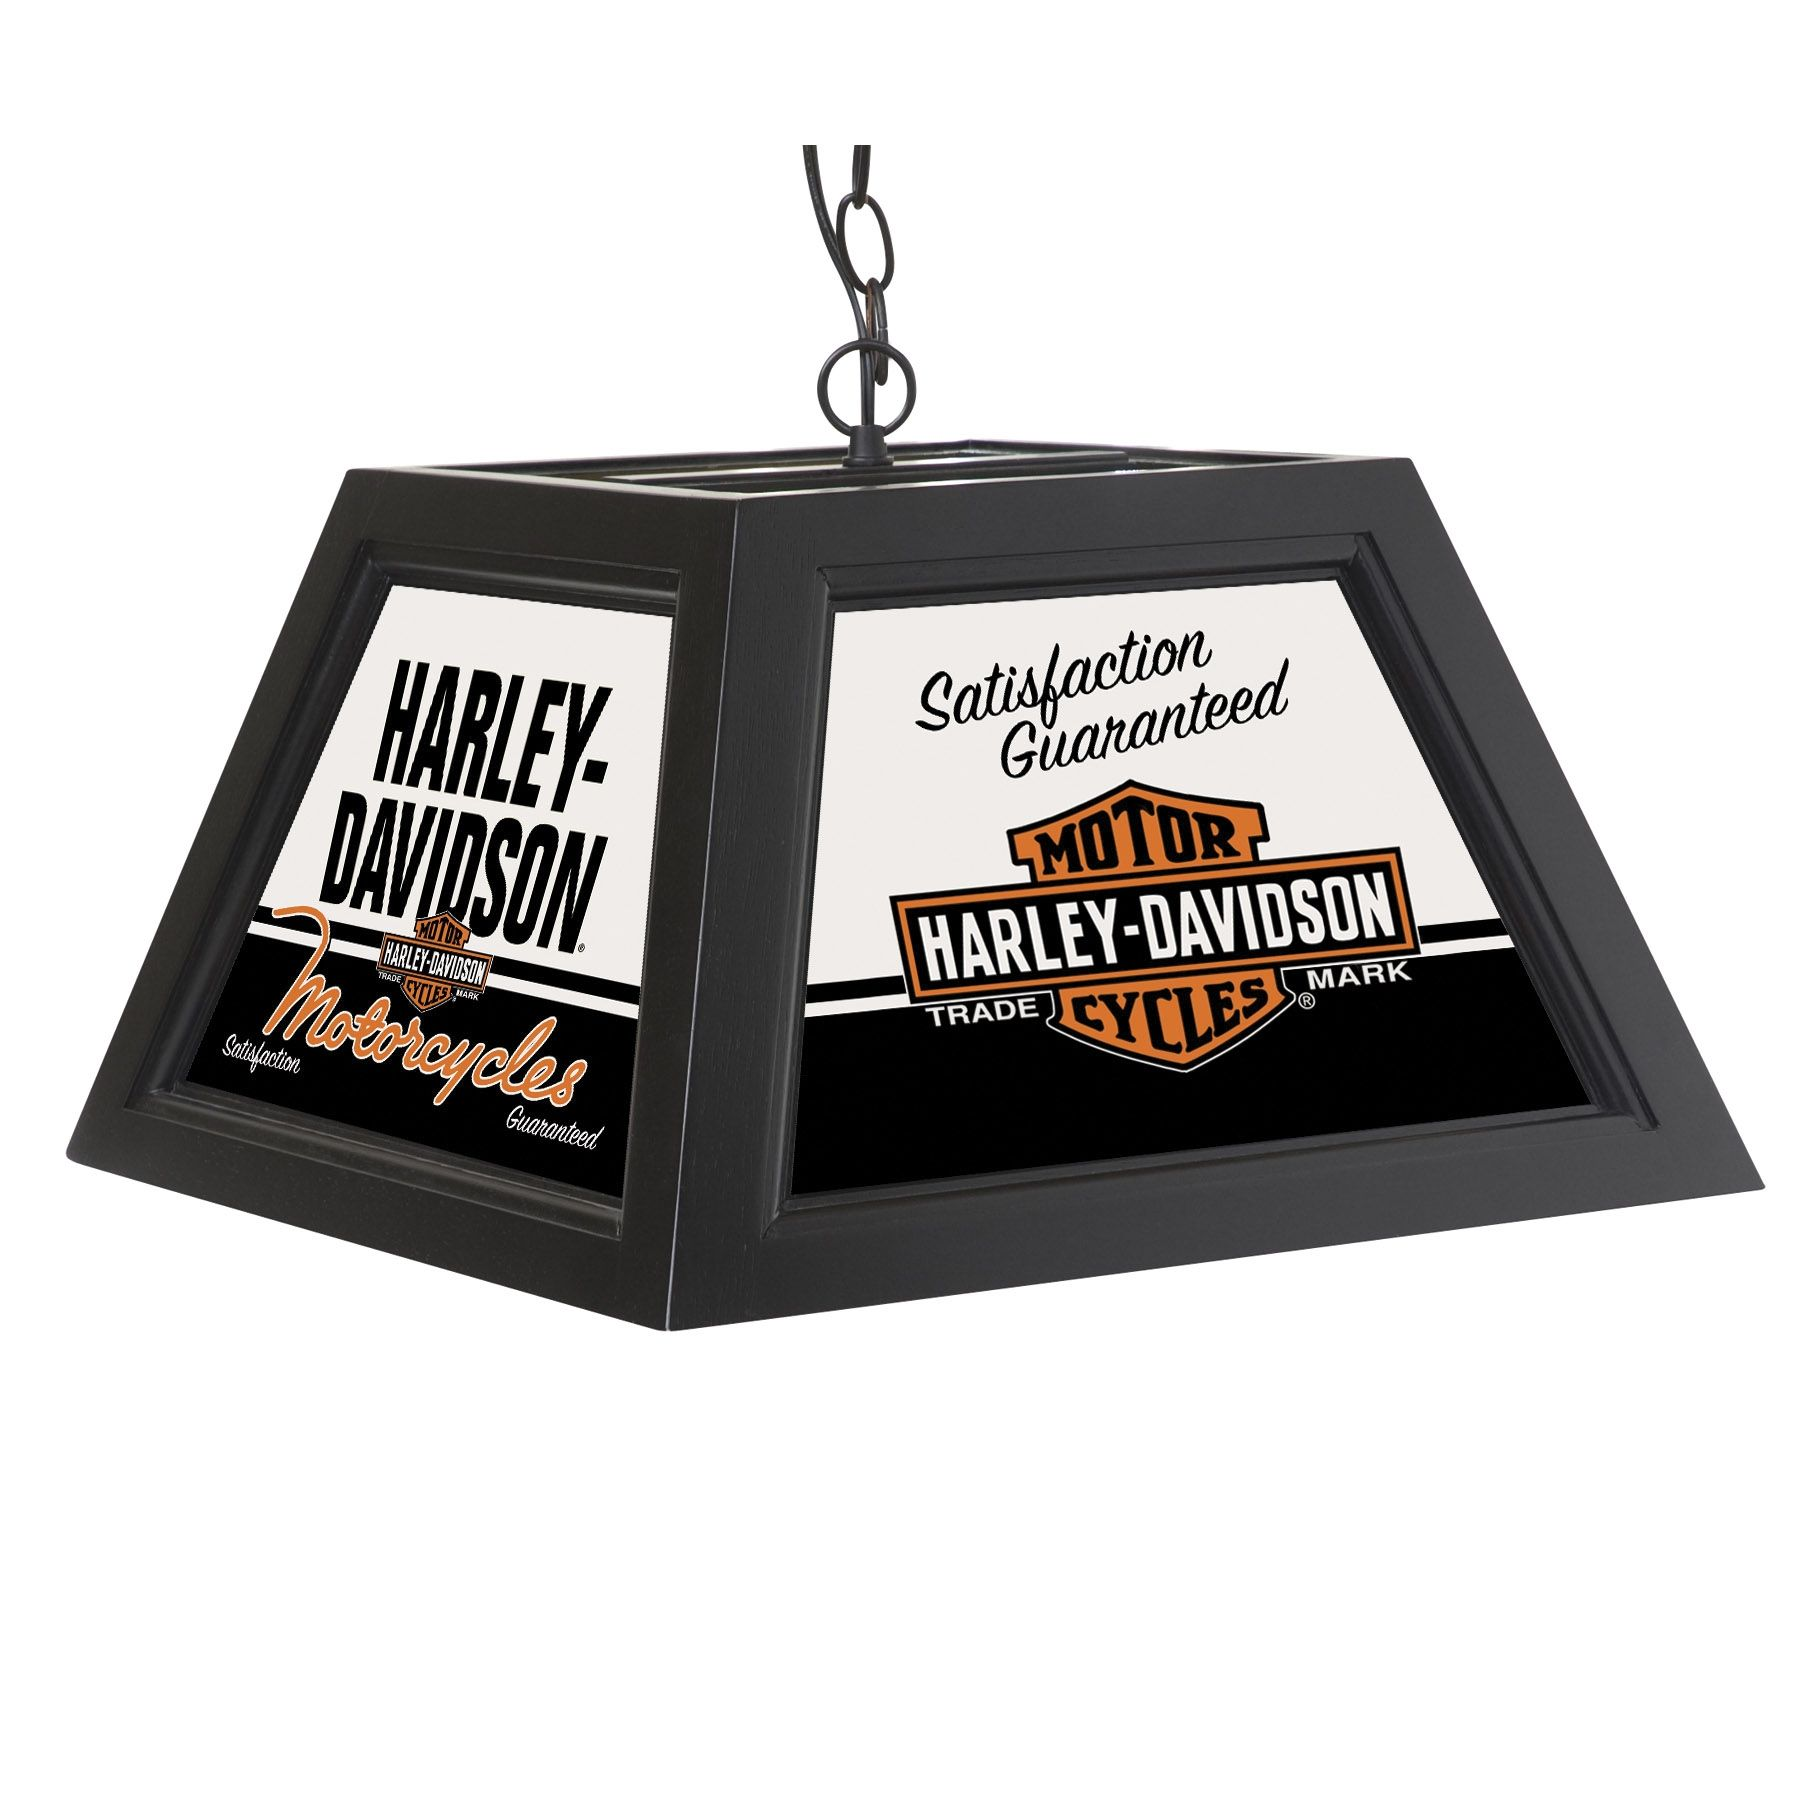 Harley davidson ceiling fan light httpladysrofo pinterest harley davidson ceiling fan light aloadofball